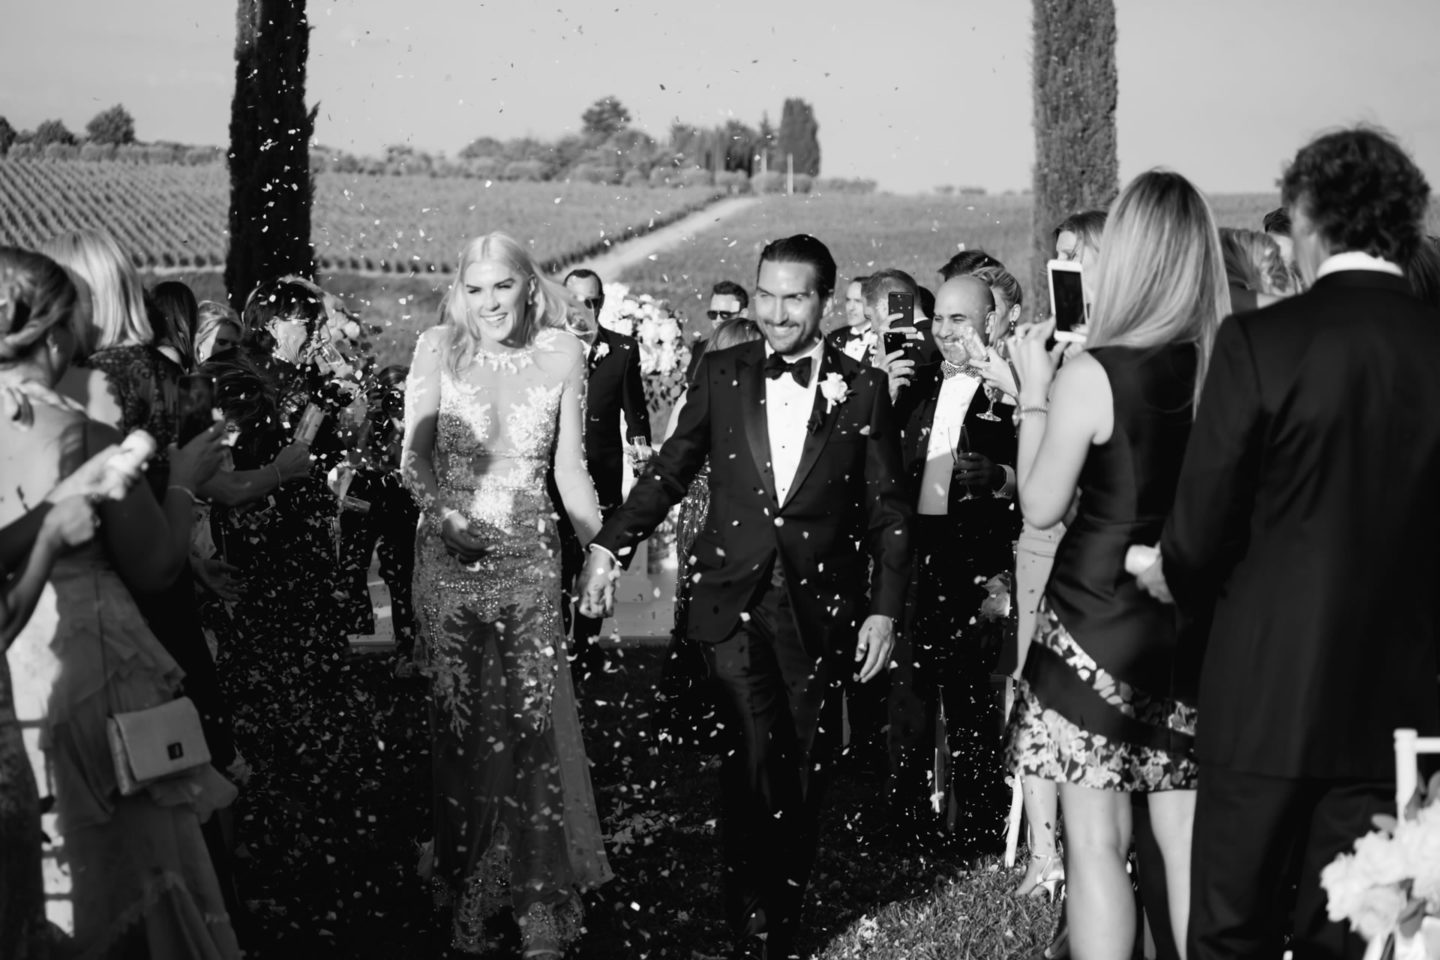 Rice - 42 :: Exciting wedding in the countryside of Siena :: Luxury wedding photography - 41 :: Rice - 42